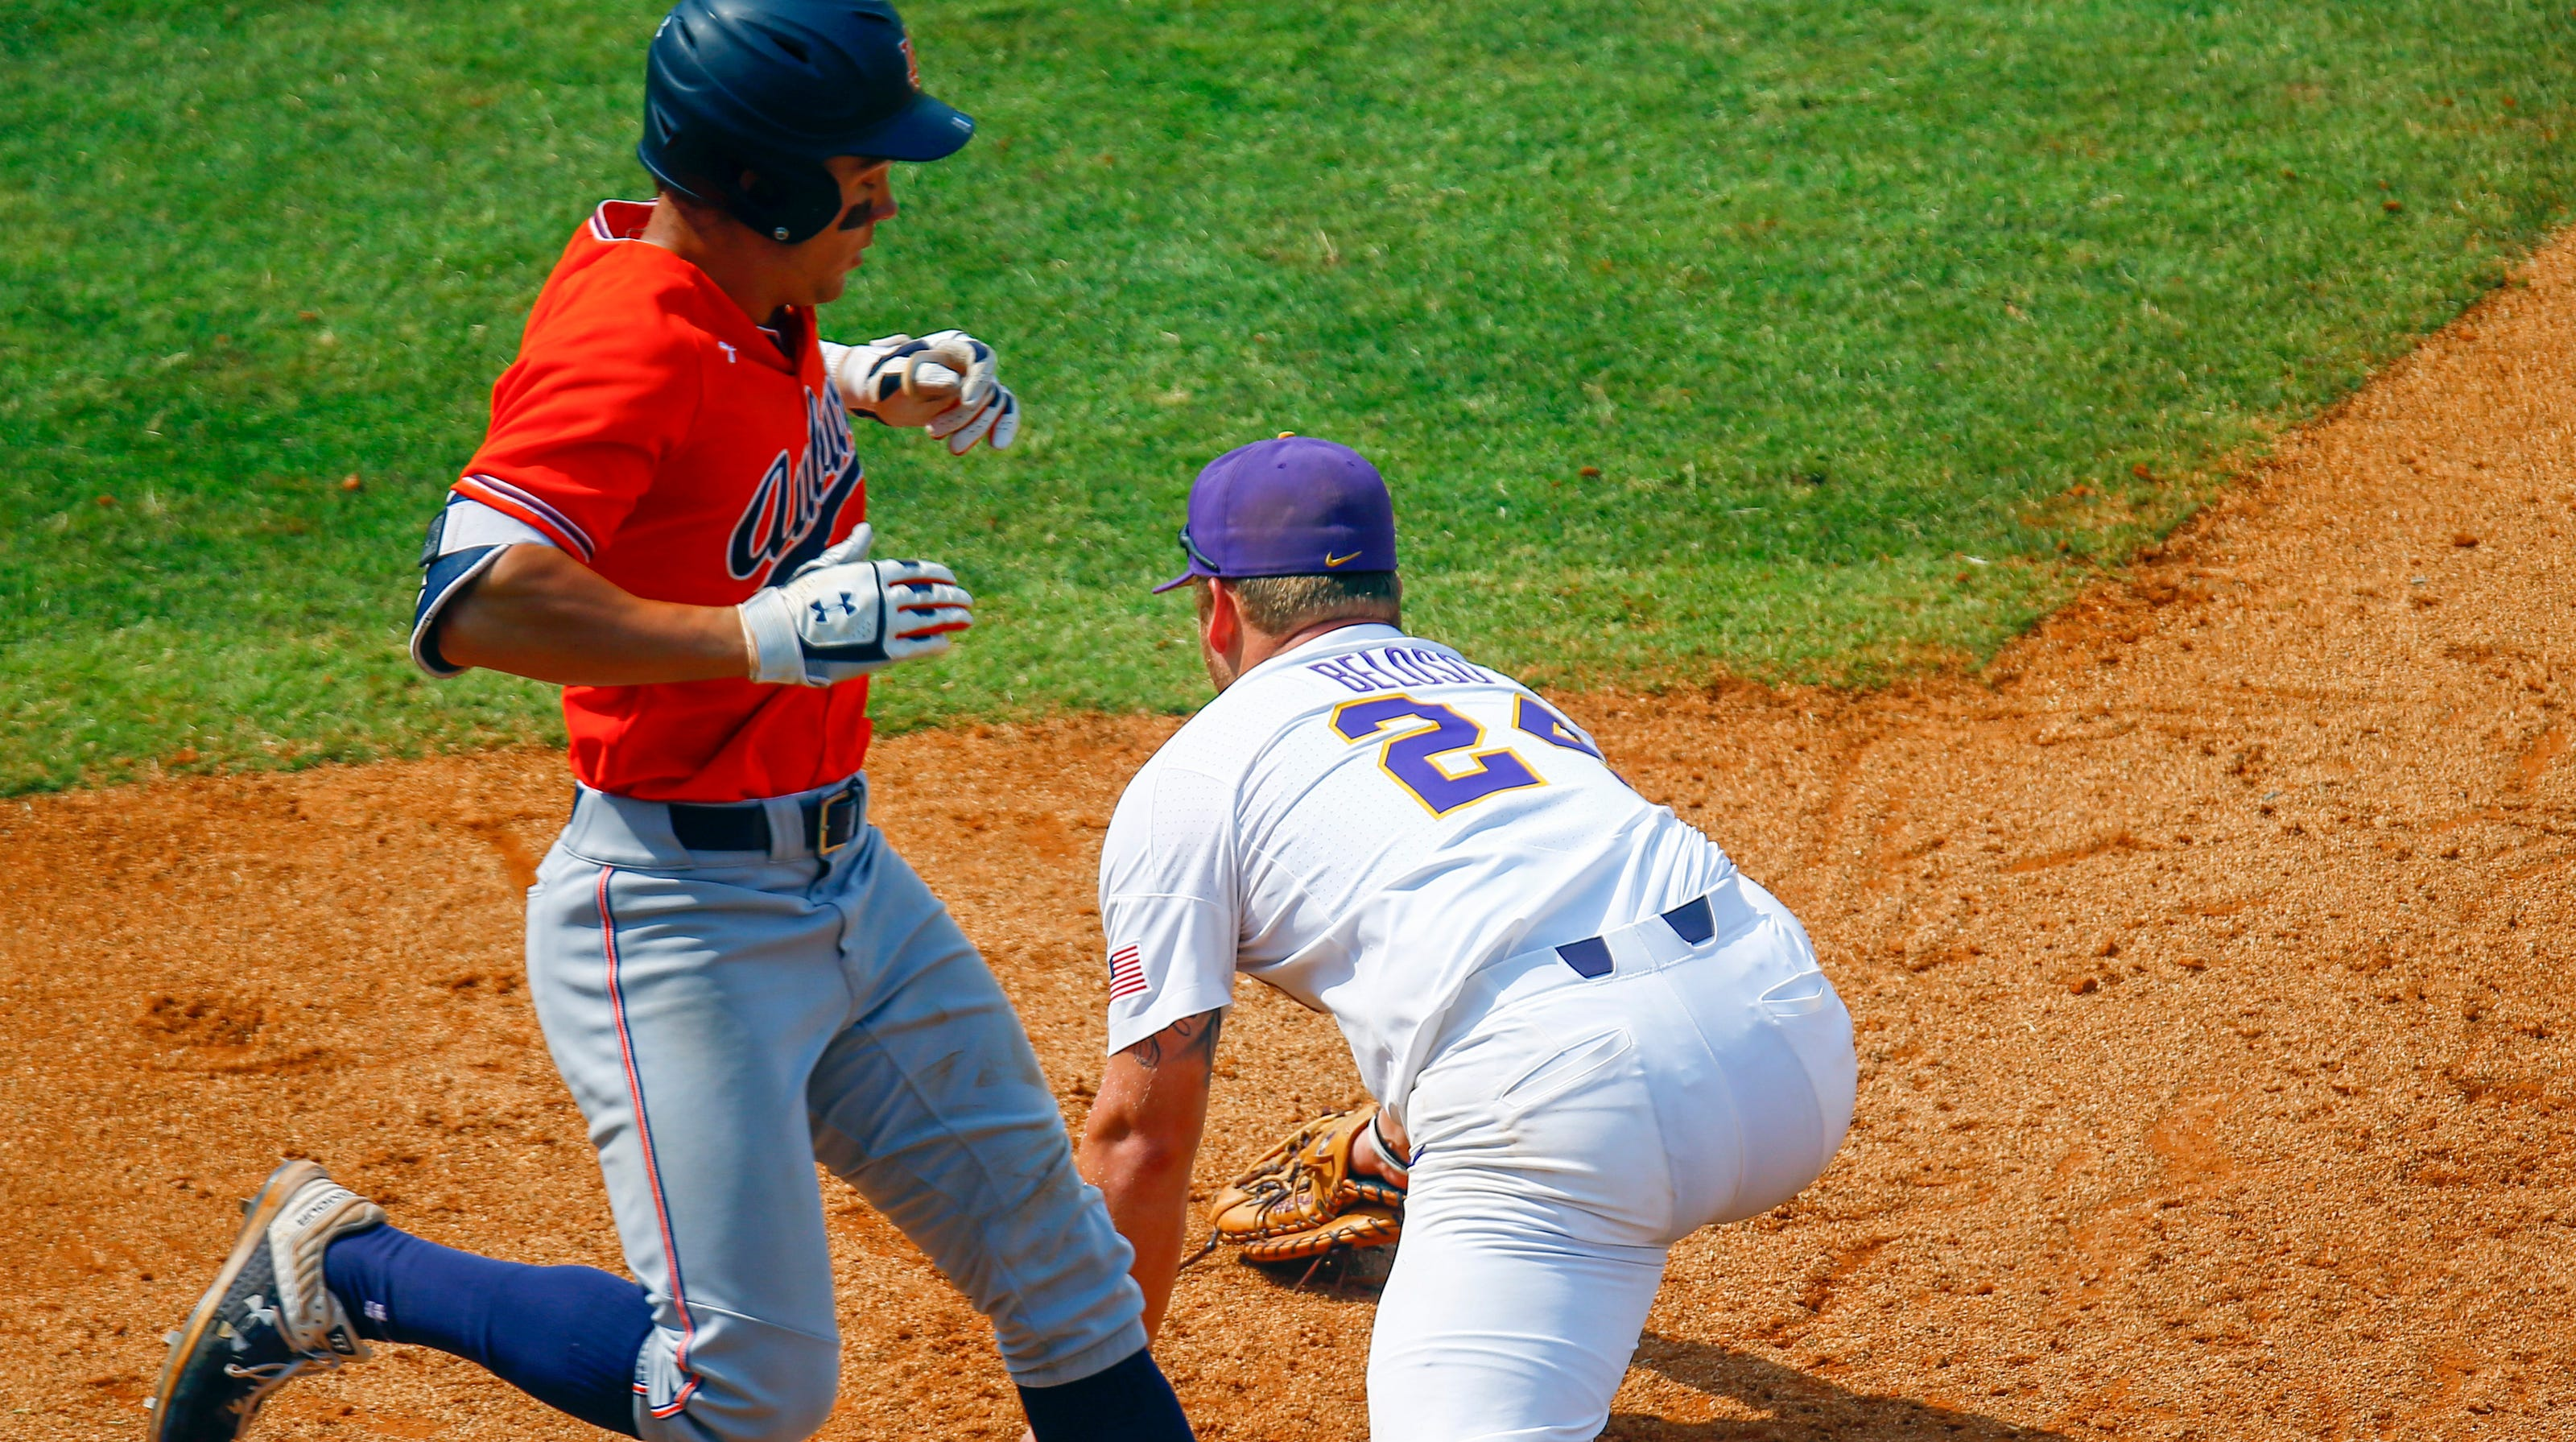 How to watch LSU Tigers baseball at Auburn on TV, live stream plus game times